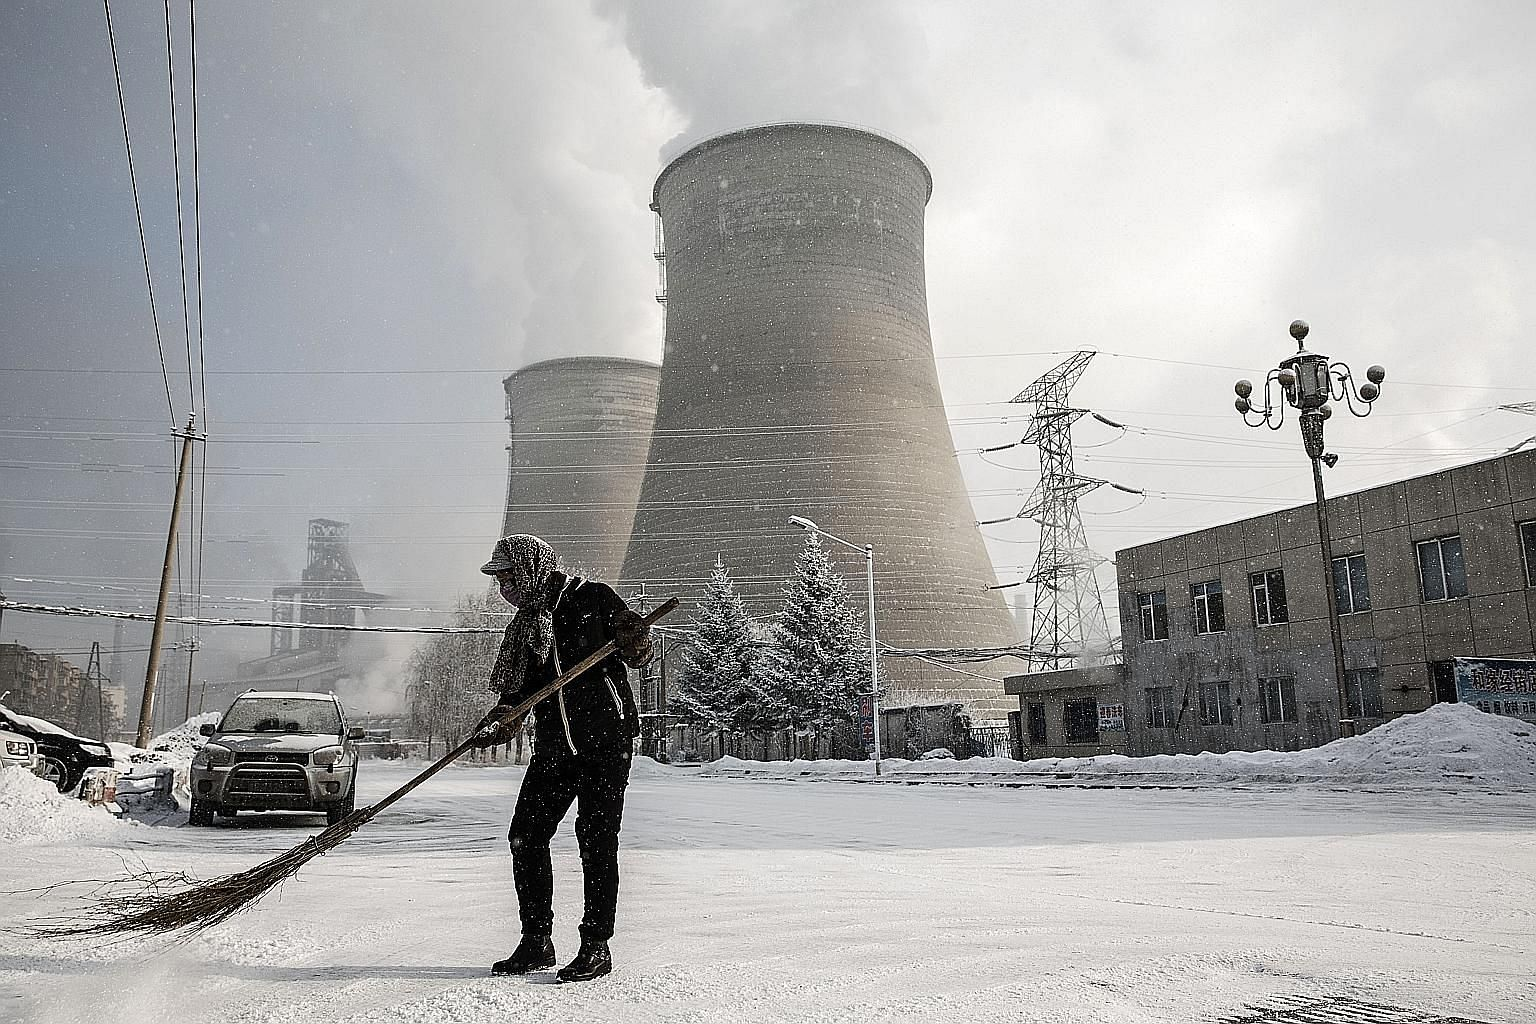 The cooling towers of a steel plant in Tonghua, Jilin province. The Chinese city's once-vaunted state-run steel mills have slipped inexorably into decline, weighed down by slumping global markets, a changing economy and the burden of costs and respon